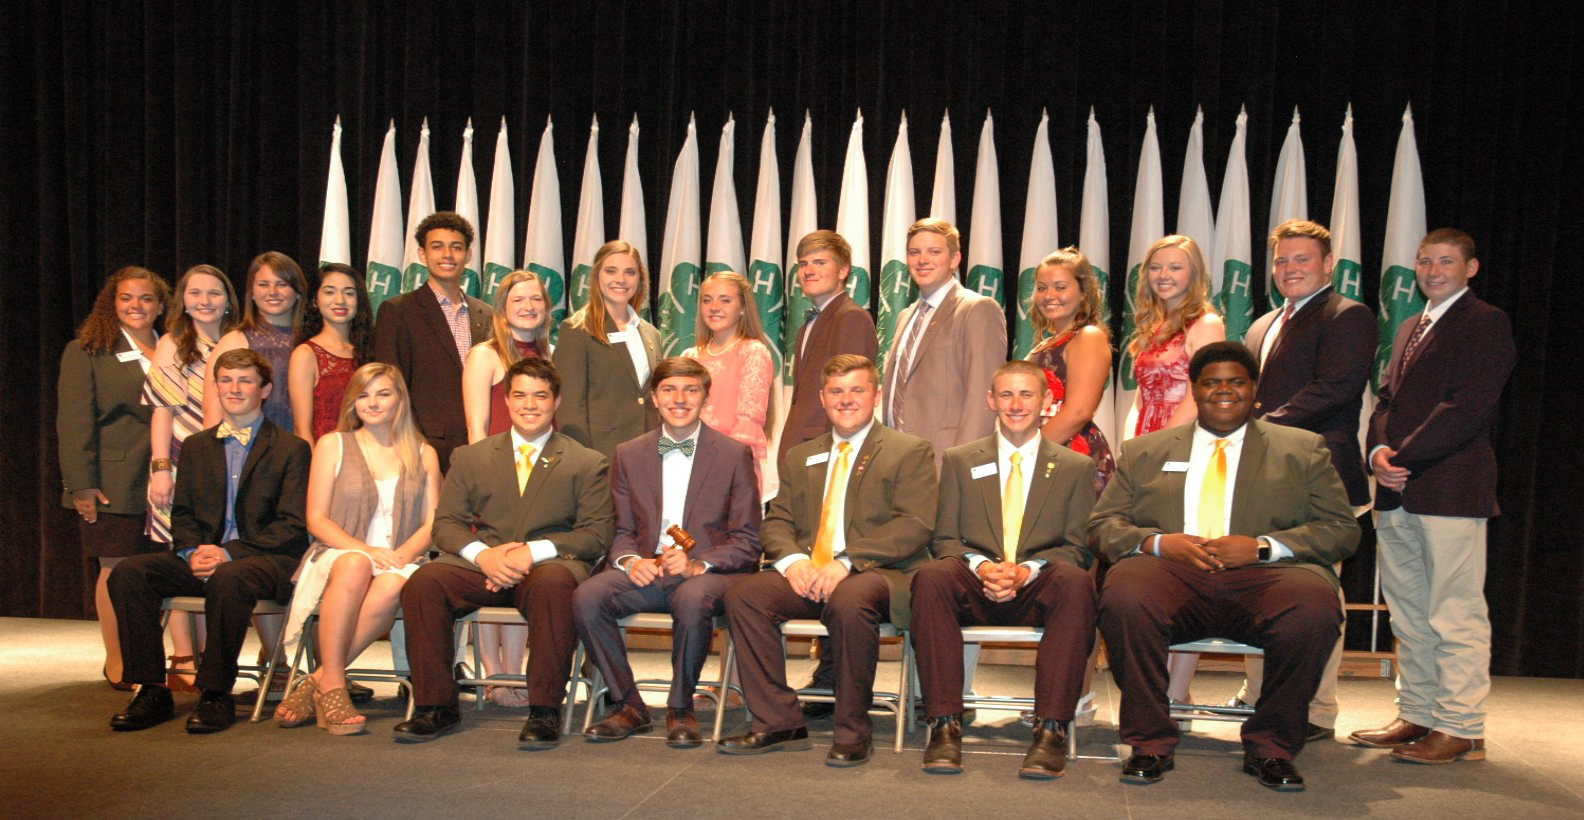 2017-18 STATE 4-H COUNCIL MEMBERS SELECTED AT ROUNDUP - State Council President: Grant Hitchcock, Warren County -- State Council Vice President: Aaron Lay, Monroe County -- Western Region Senior Representative: Autumn Trainum, Henderson County -- Western Region Senior Representative: C.J. Bryson, Gibson County -- Central Region Senior Representative: Jacob Wade, Bedford County -- Central Region Senior Representative: Hence Duncan, Franklin County -- Eastern Region Senior Representative: Danny Lawson, Blount County -- Western Region Junior Representative: Carson Stover, Obion County -- Western Region Junior Representative: Billee Lassiter, Henry County -- Central Region Junior Representative: Emily Pennington, Warren County -- Central Region Junior Representative: Caroline Brooks, Warren County -- Eastern Region Junior Representative: Will Dalton, Grainger County -- Eastern Region Junior Representative: Olivia Chapman-Miller, Morgan County -- Representative – at – Large: Santana Bingham, Madison County -- Representative – at – Large: Nelani Colleti, Williamson County